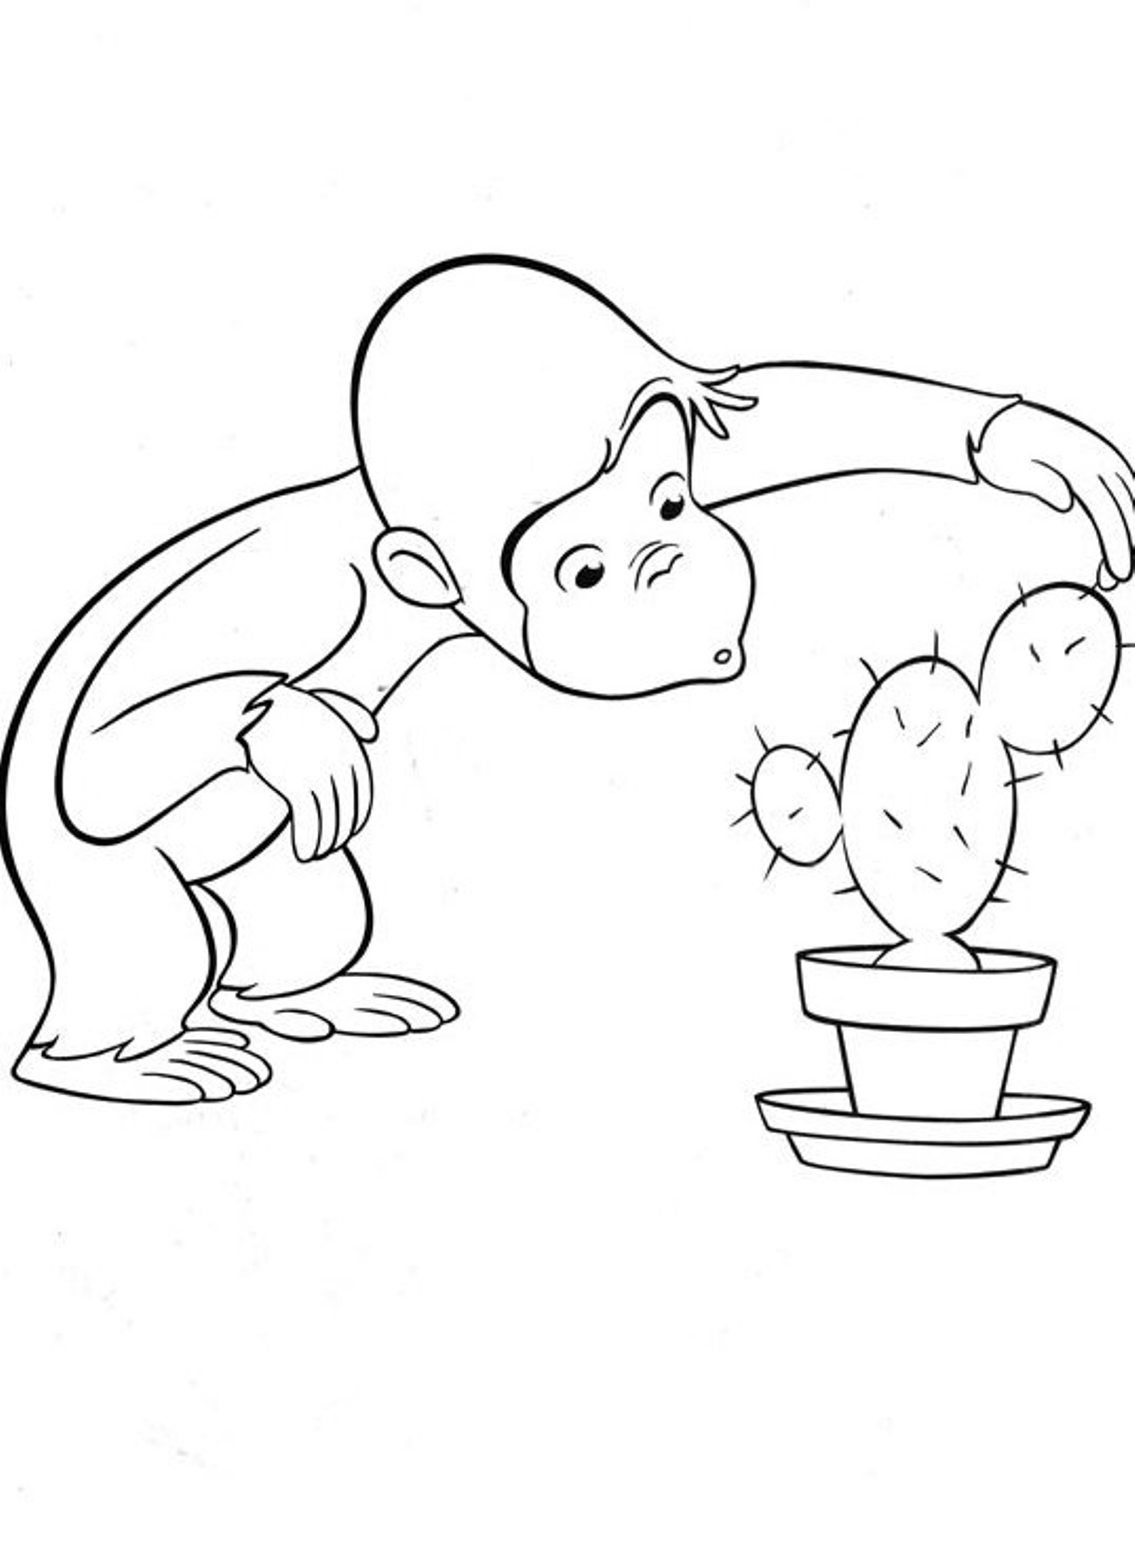 Dexterity Curious George Coloring Pages Printable Cartoon Coloring ...